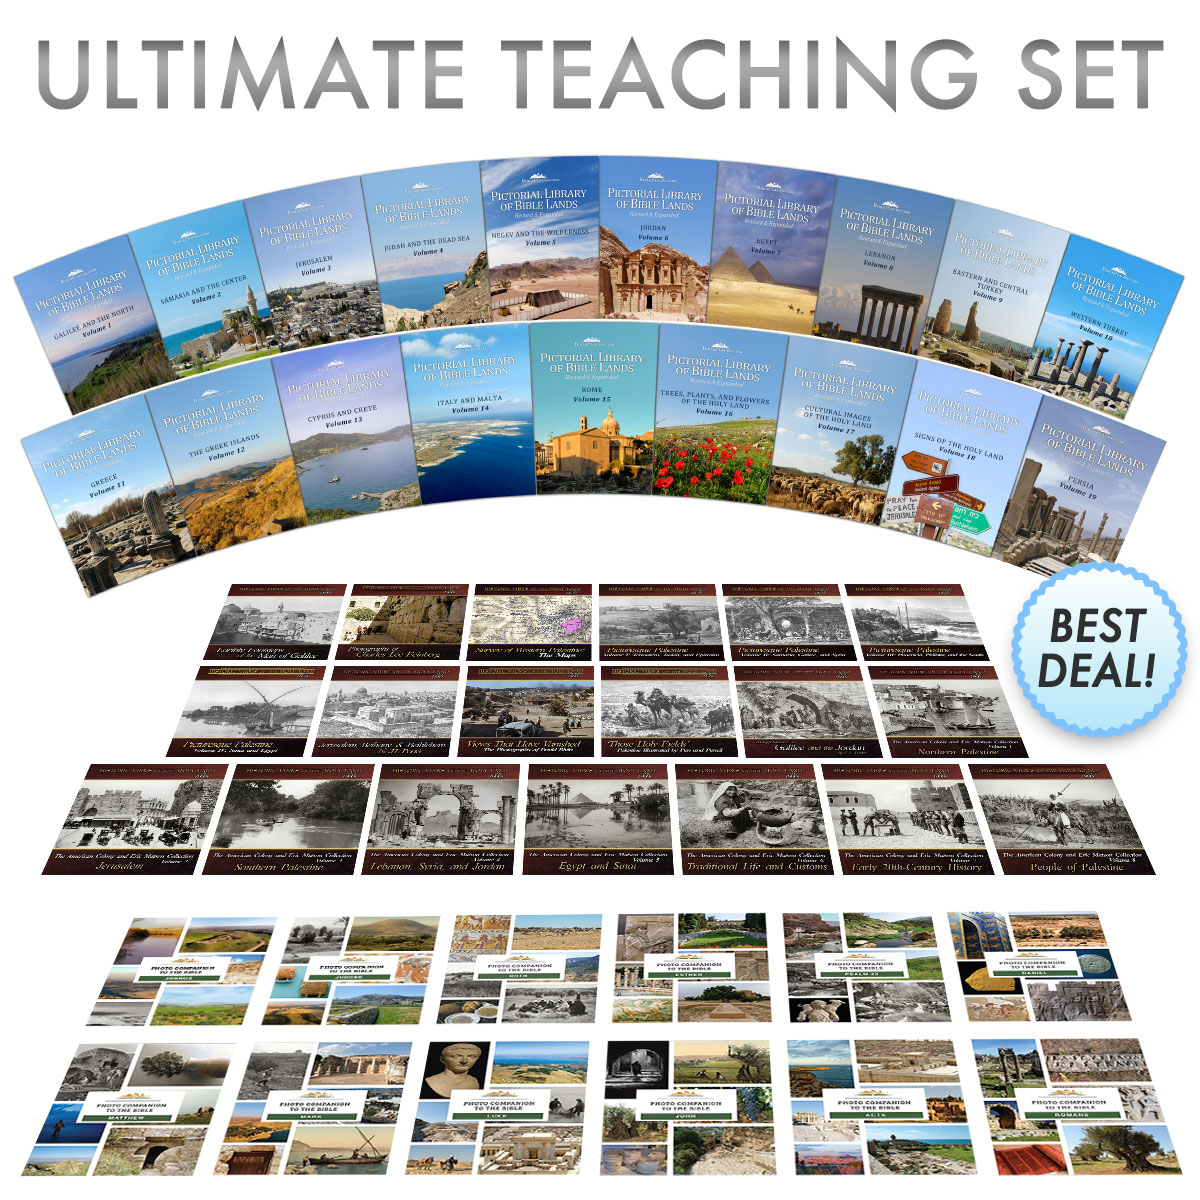 Ultimate Teaching Set